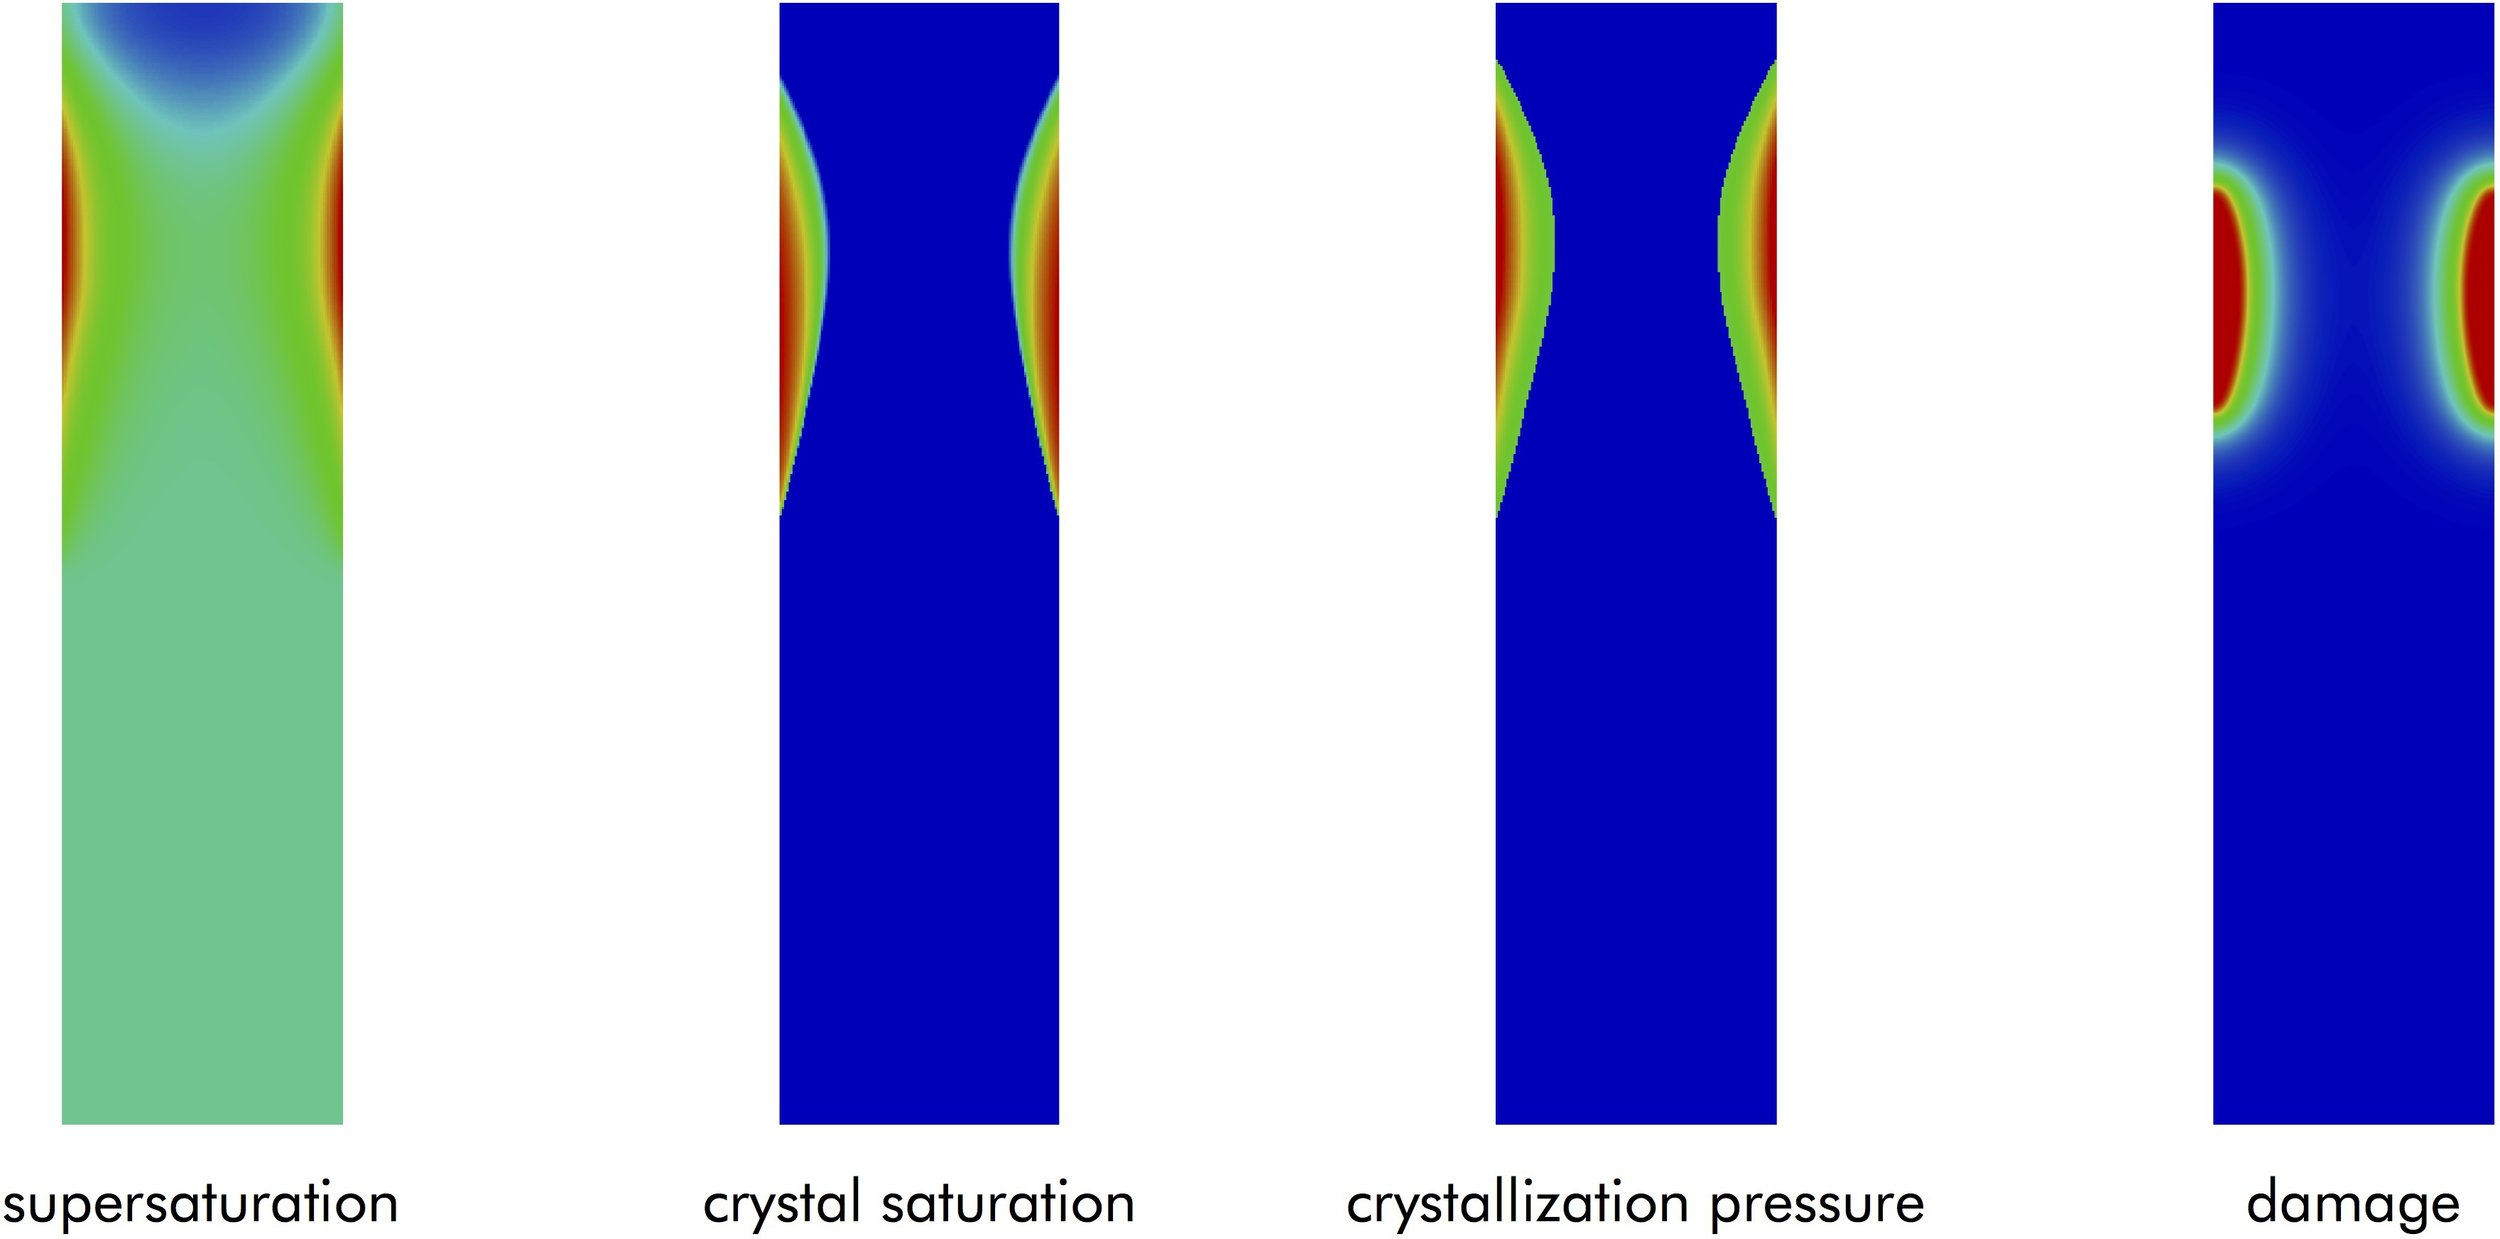 This work proposes a chemo-hydro-mechanical model for computer simulation of cracking and damage in porous materials from crystallization in pores. This phenomenon appears in many problems including weathering of geologic materials, and it involves very intricate physics whereby reactive flow interacts with deformation and fracture. This figure shows the results of our coupled chemo-hydro-mechanical simulation of salt damage in a stone, which have been the subject of numerous experimental studies such as Scherer (2004), CCR 34:1613–1624.